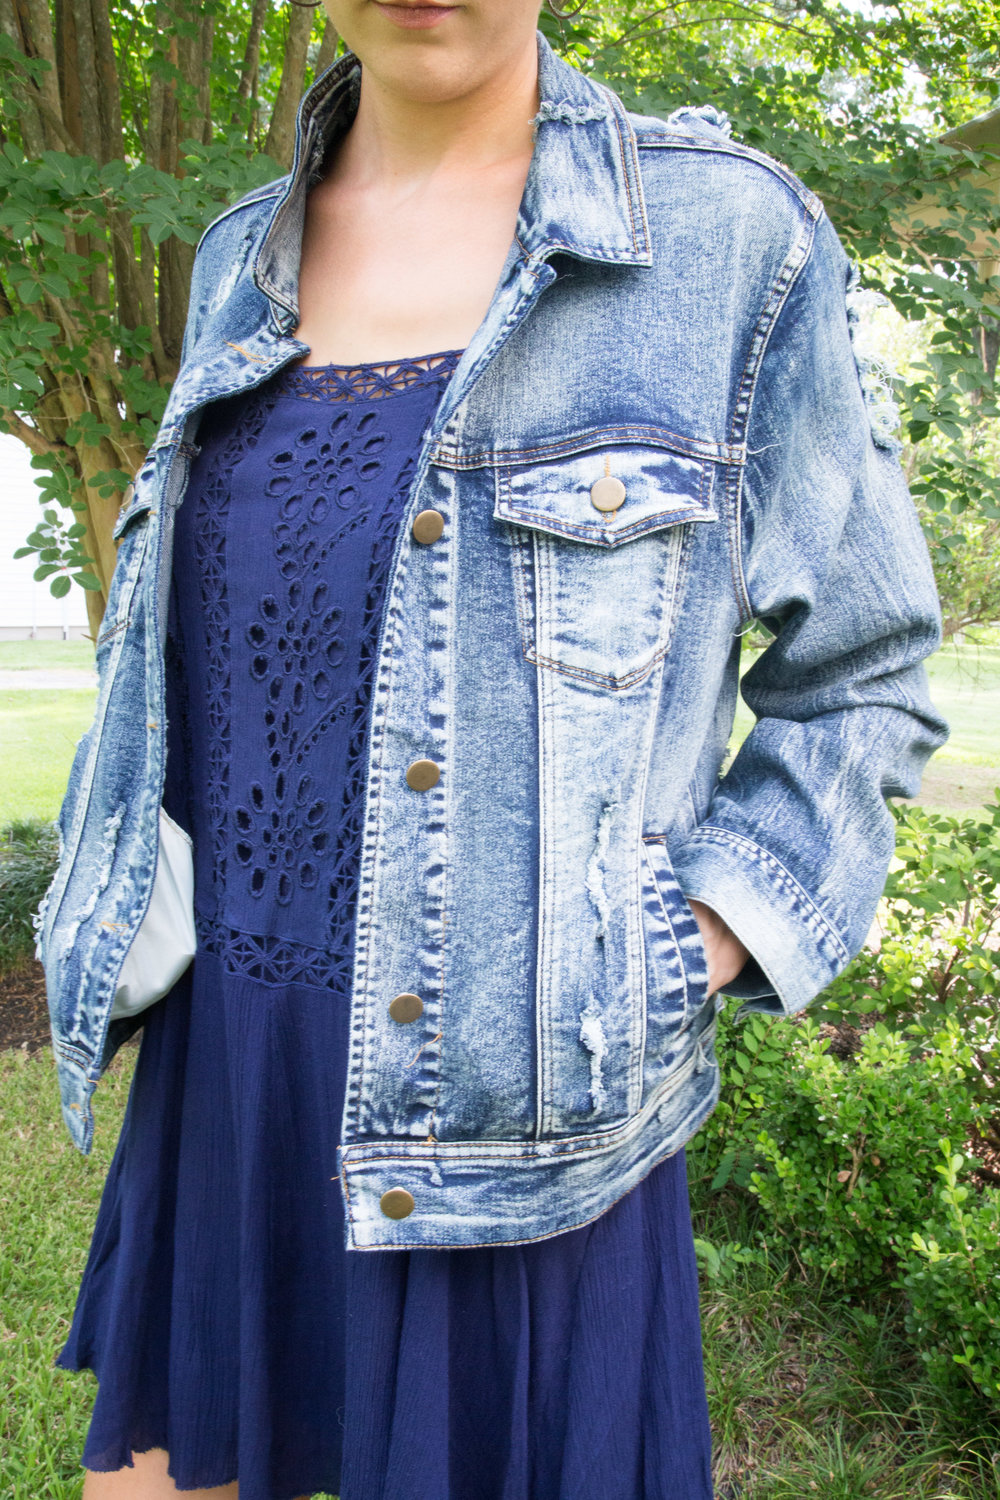 I love how a simple piece can completely change the look and feel of an outfit. This denim jacket dresses it down a little bit but at the same time it gives it a casual-chic vibe. You can see how I paired this denim jacket with a tee shirt dress  here . https://www.mintedmod.com/home-1/2018/8/11/urban-outfitters-t-shirt-dress